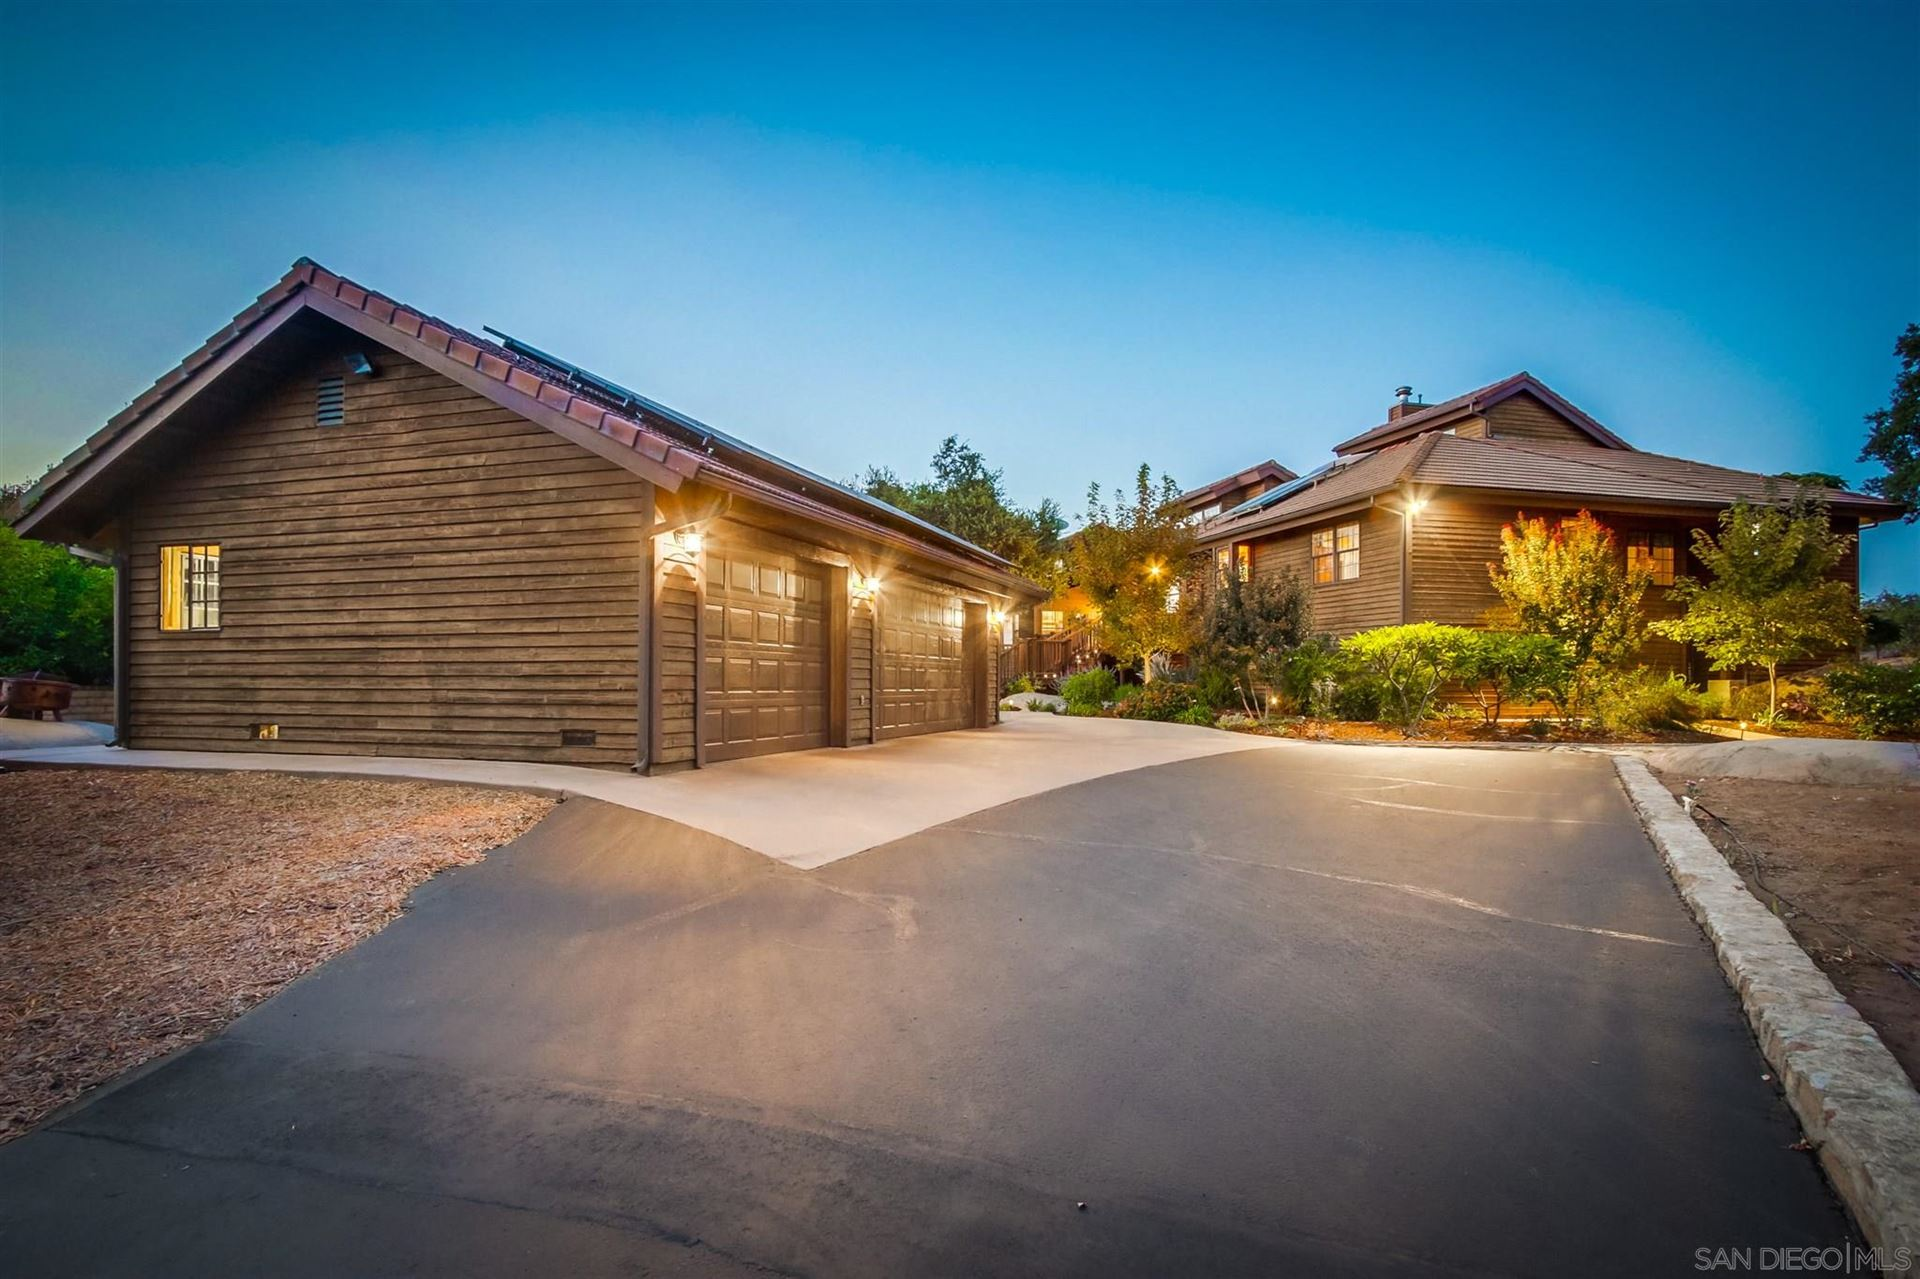 Photo of 17770 Ridgeview Ln, Ramona, CA 92065 (MLS # 200048241)